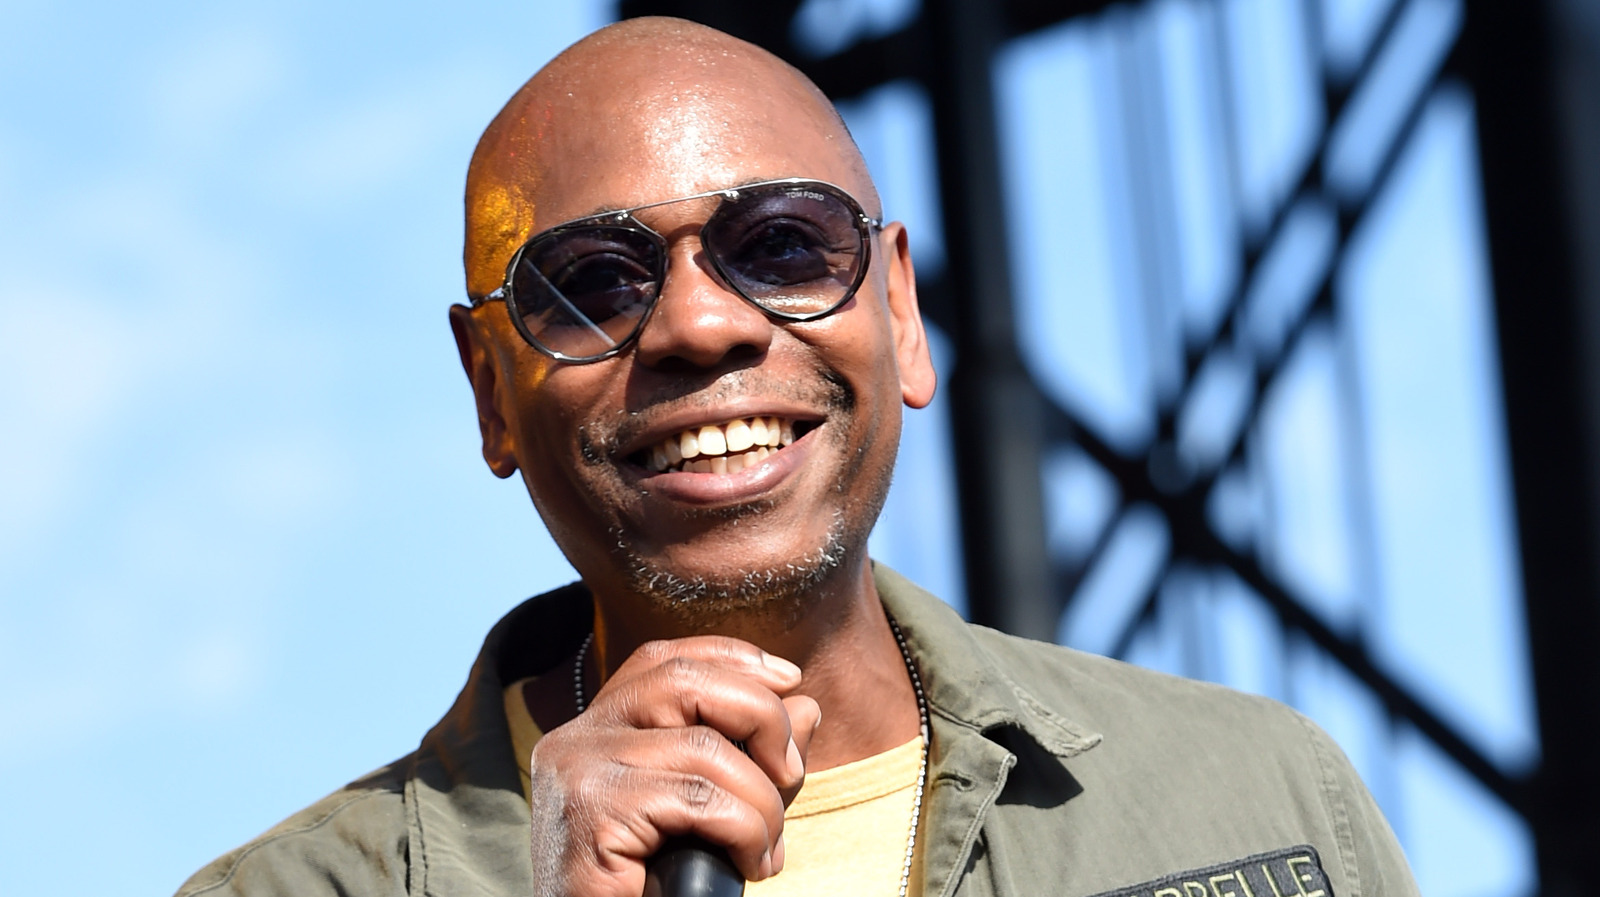 the best chappelle show episodes according to imdb https www looper com 278578 the best chappelle show episodes according to imdb